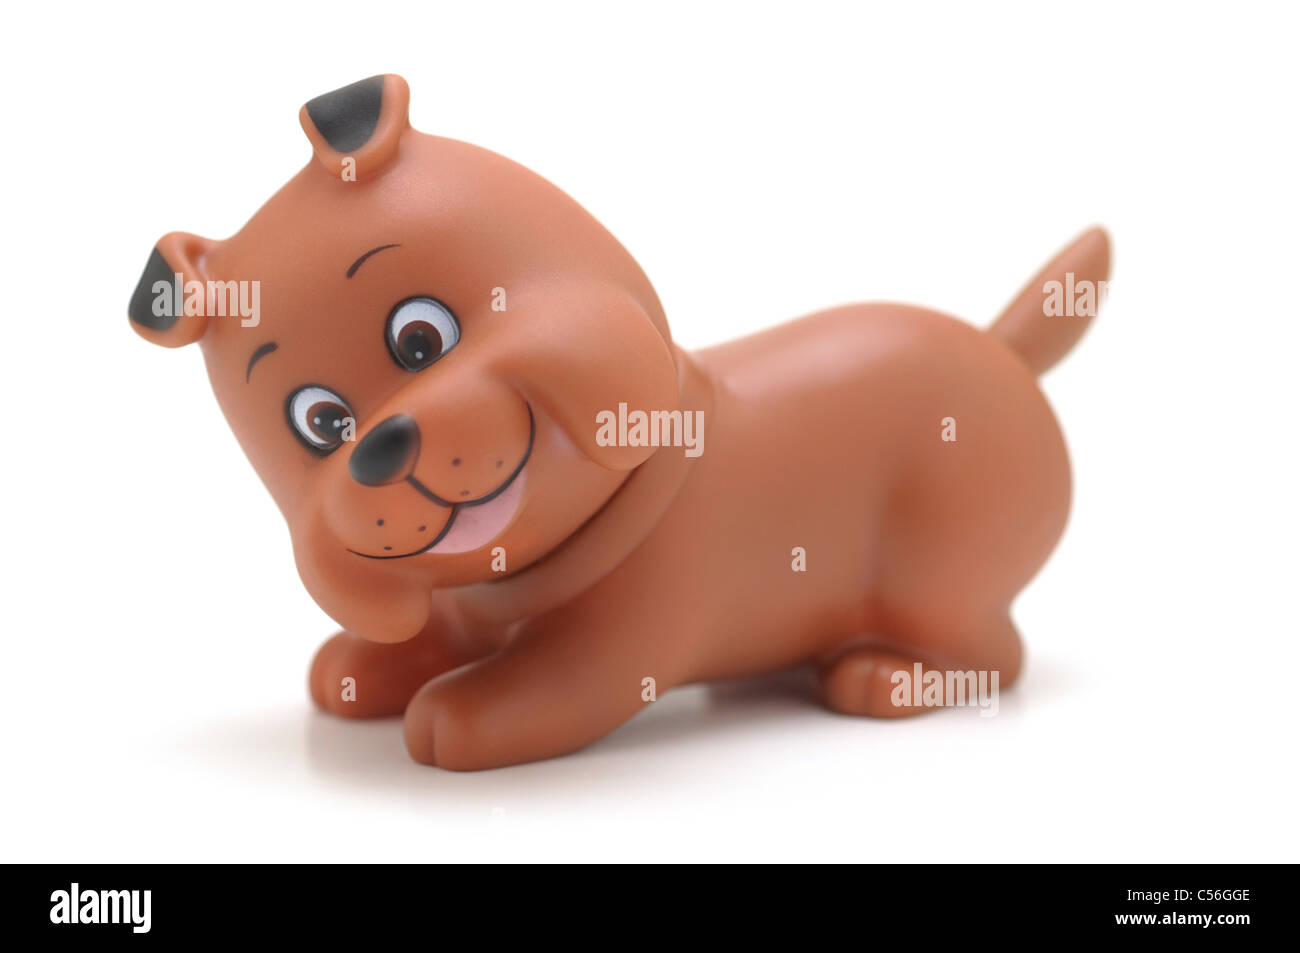 Toy Dog Puppy, Pet - Stock Image